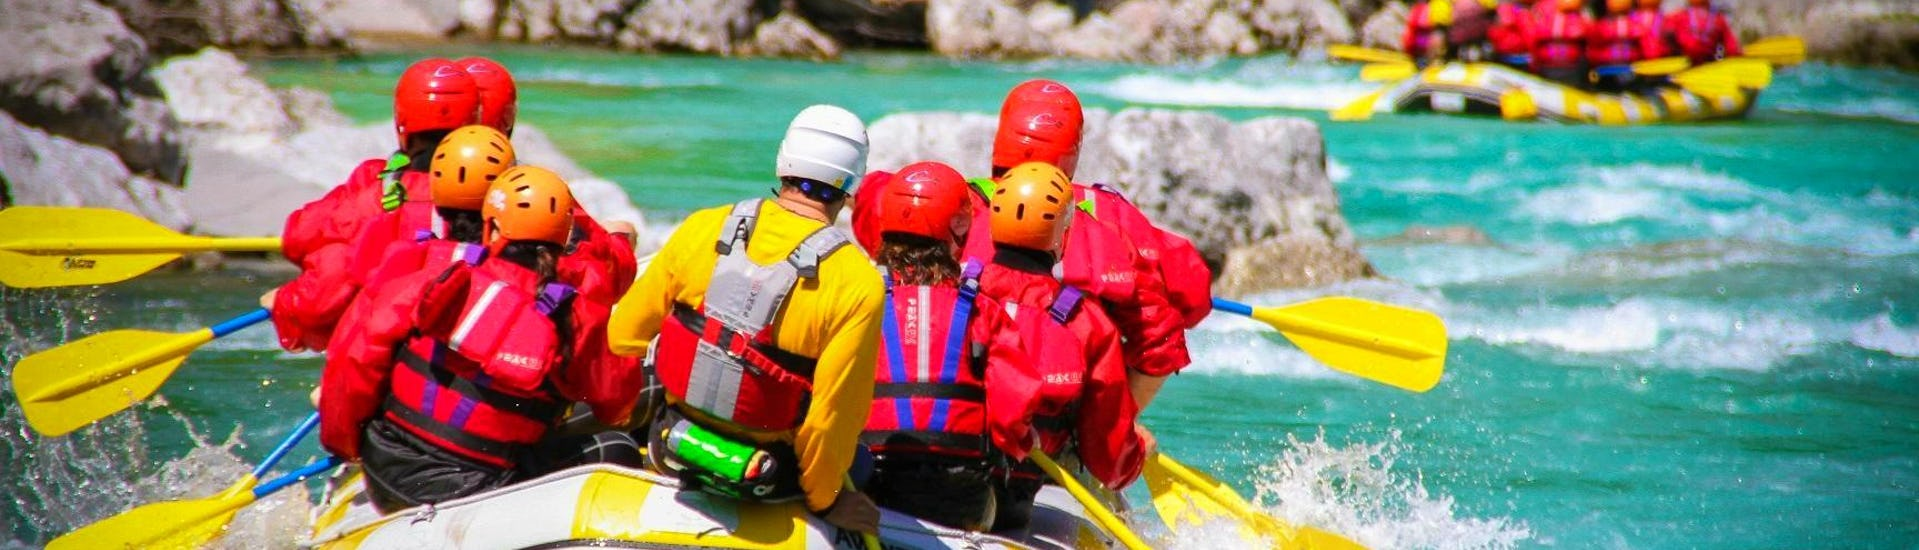 rafting-whitewater-soca-natures-ways-bovec-hero